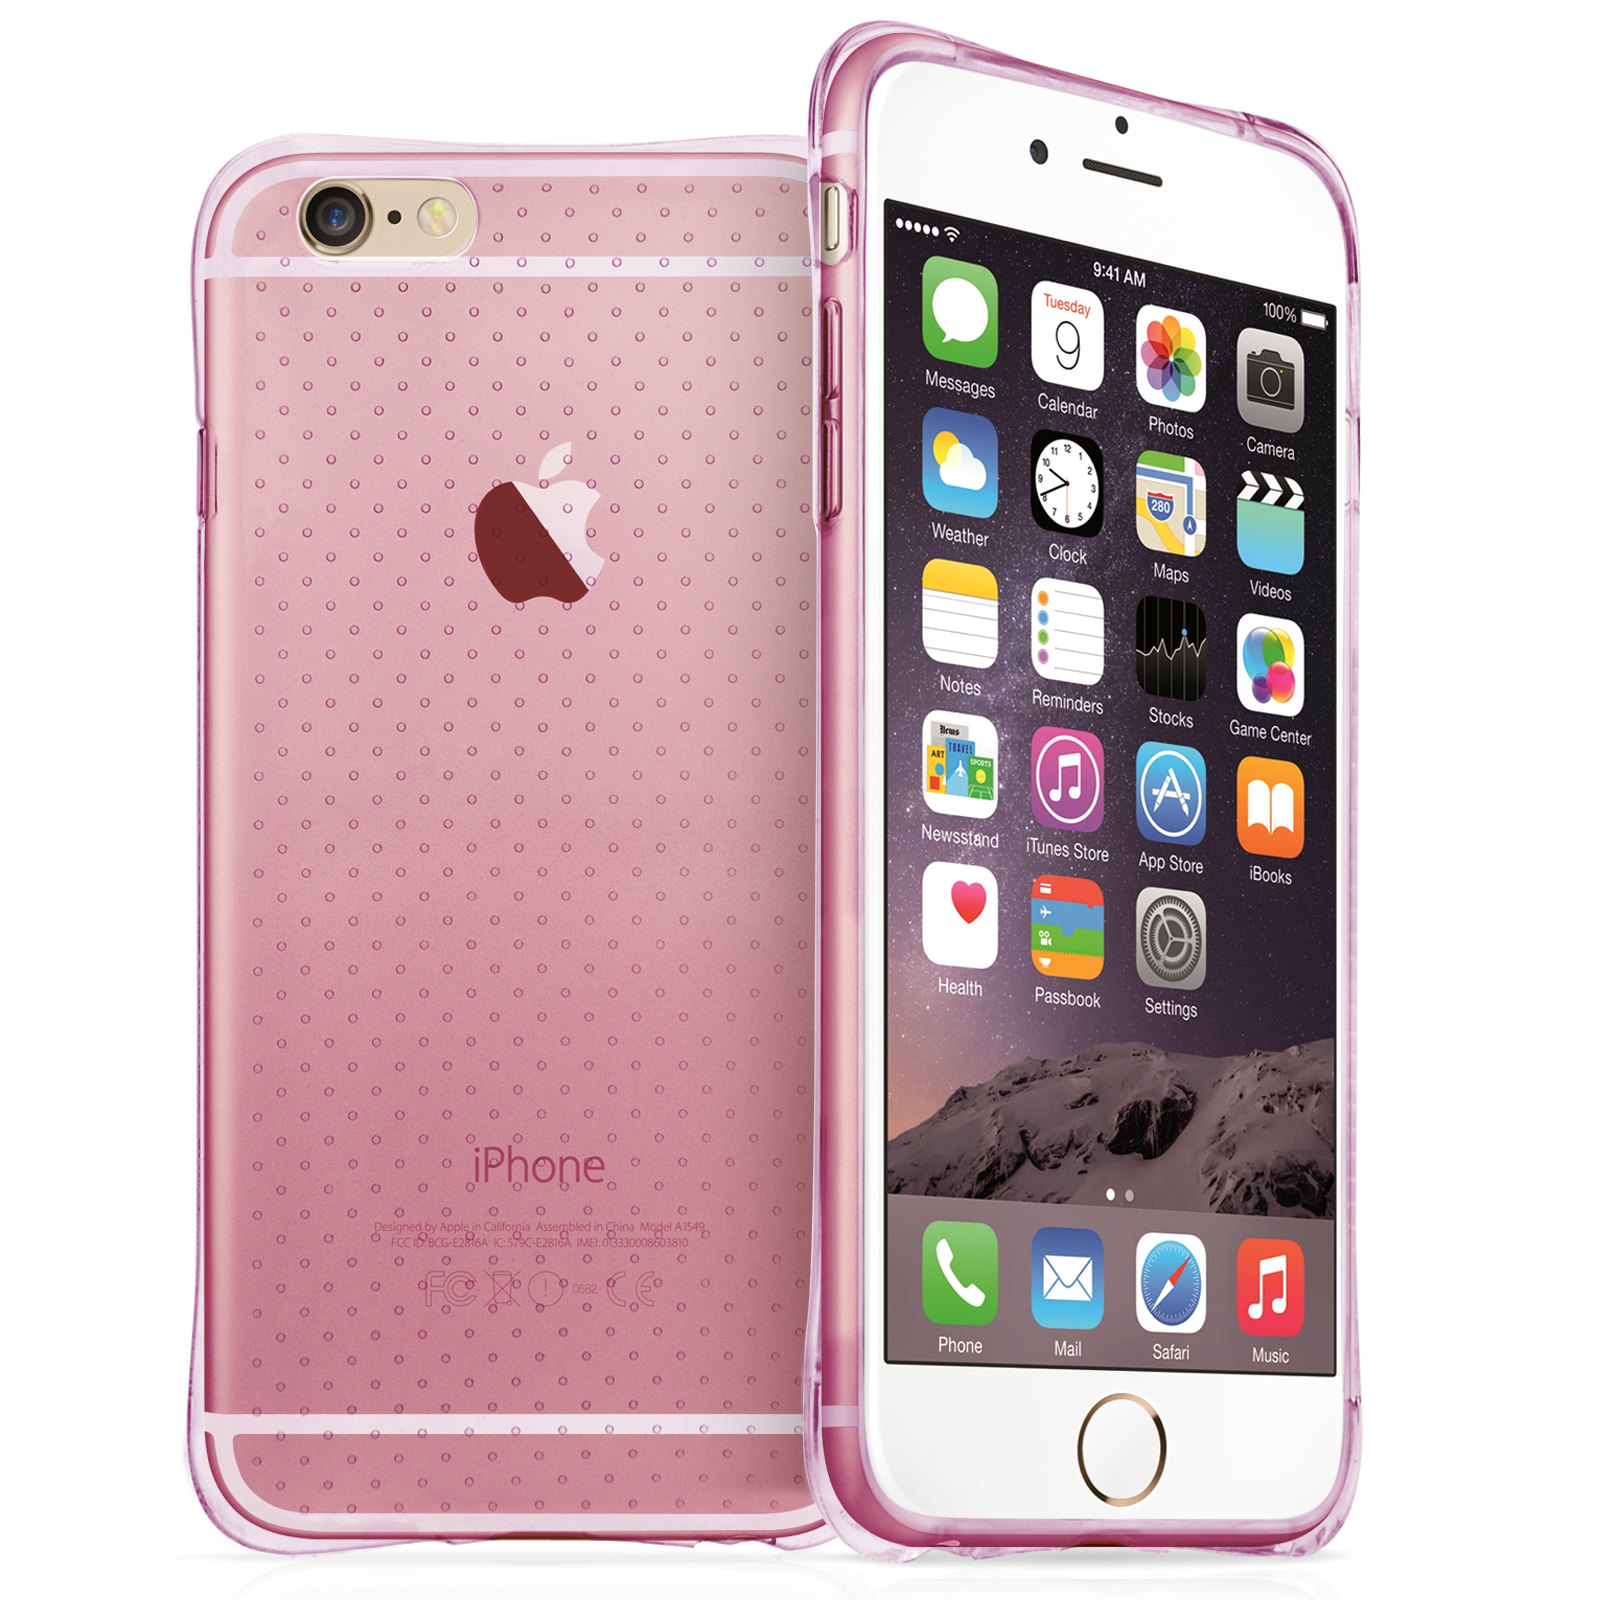 Yousave Accessories iPhone 6 Plus and 6s Plus Air Cushion Gel - Pink Case